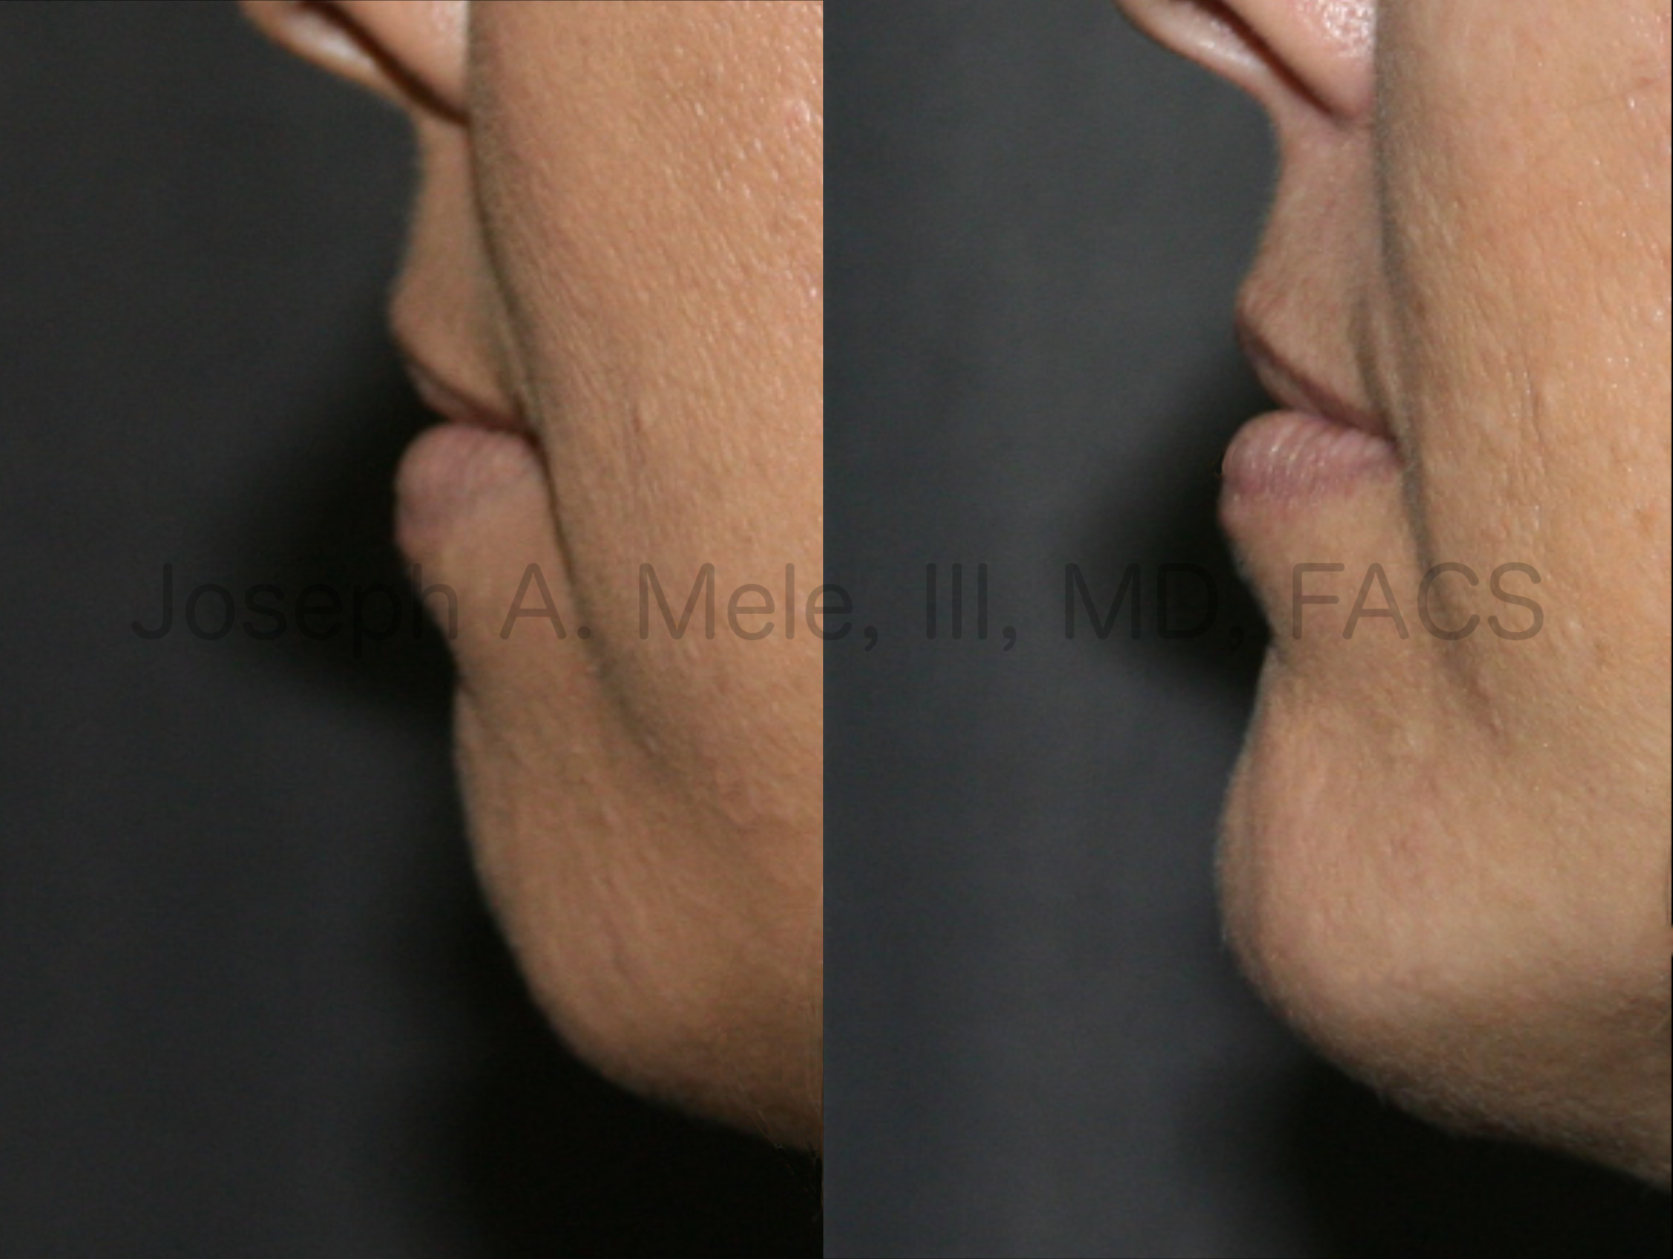 Chin Augmentation before and after pictures (Chin Implant)